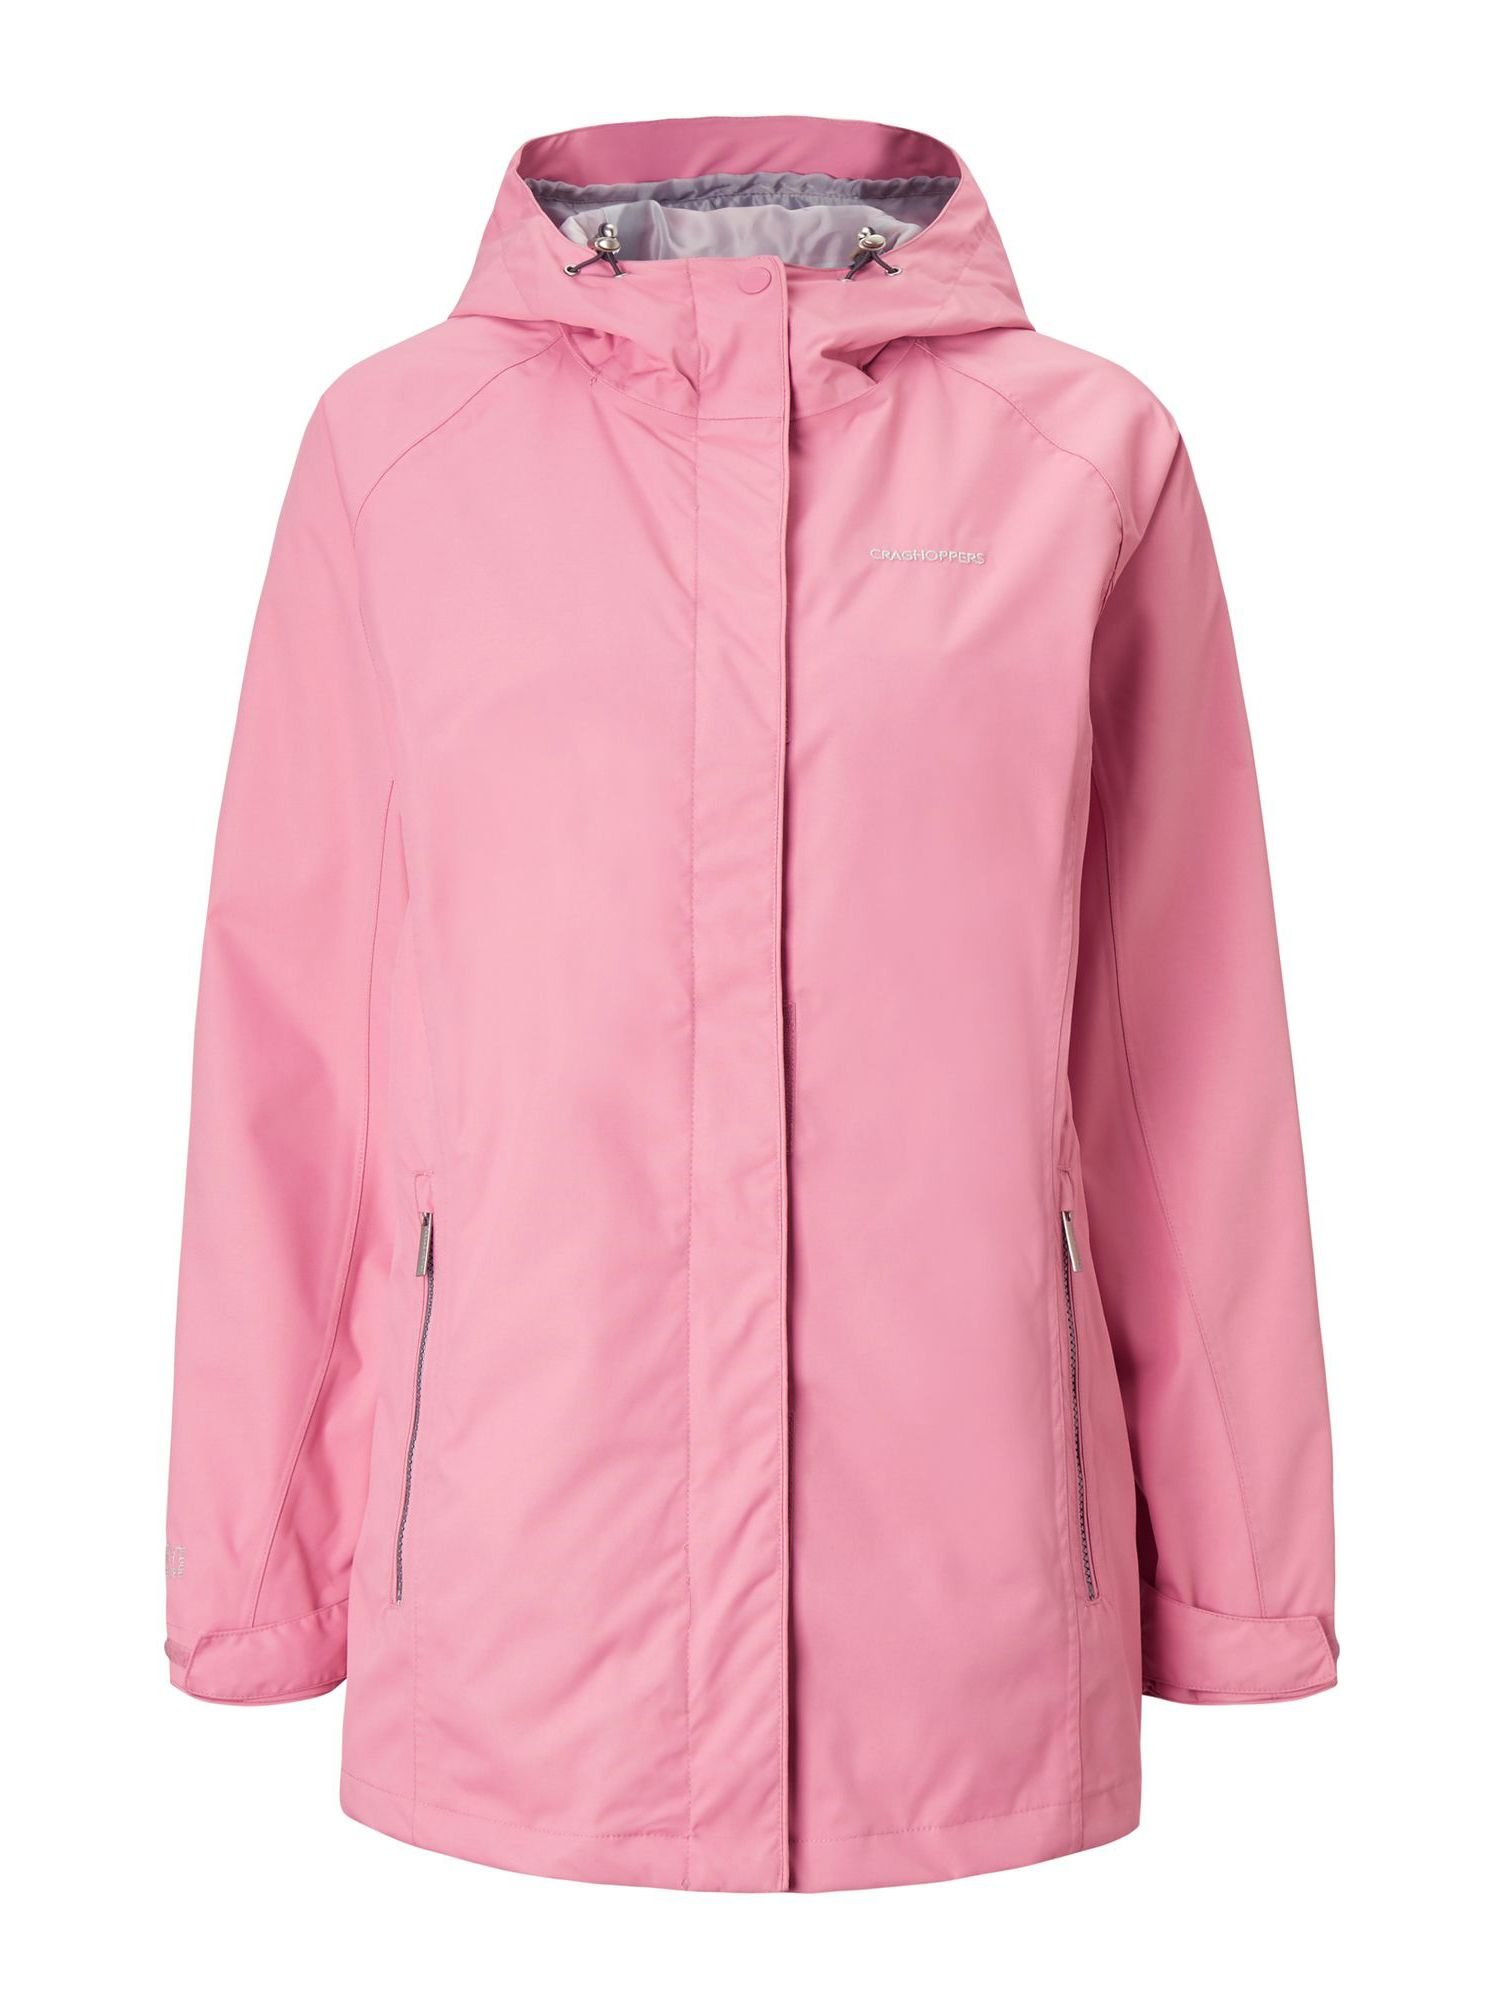 Craghoppers Madigan Classic Waterproof Jacket, Rose